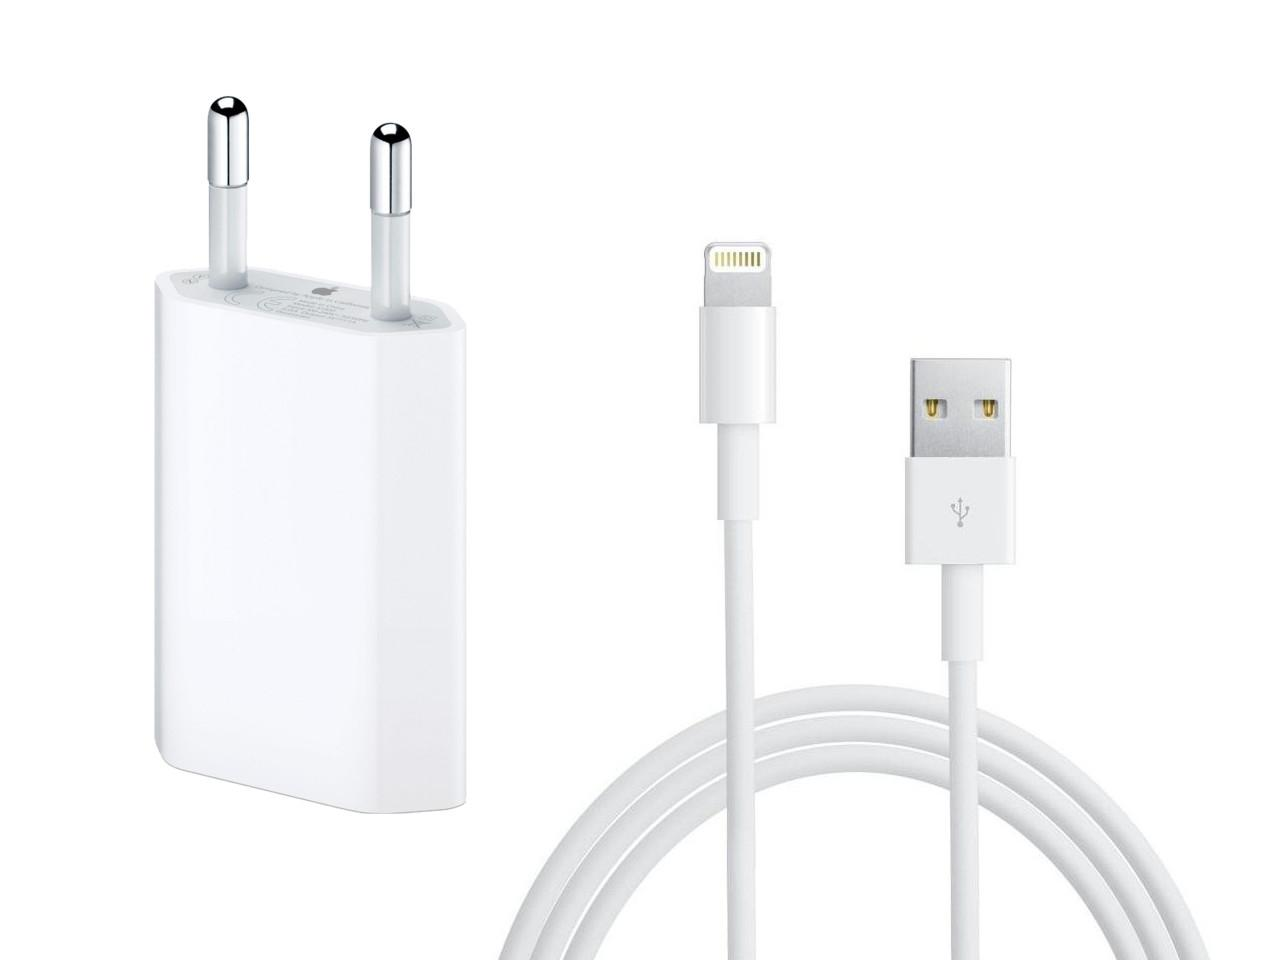 Nabíjecí sada pro Apple iPhone, iPad, adapter + kabel Lightning, 1m, bilý